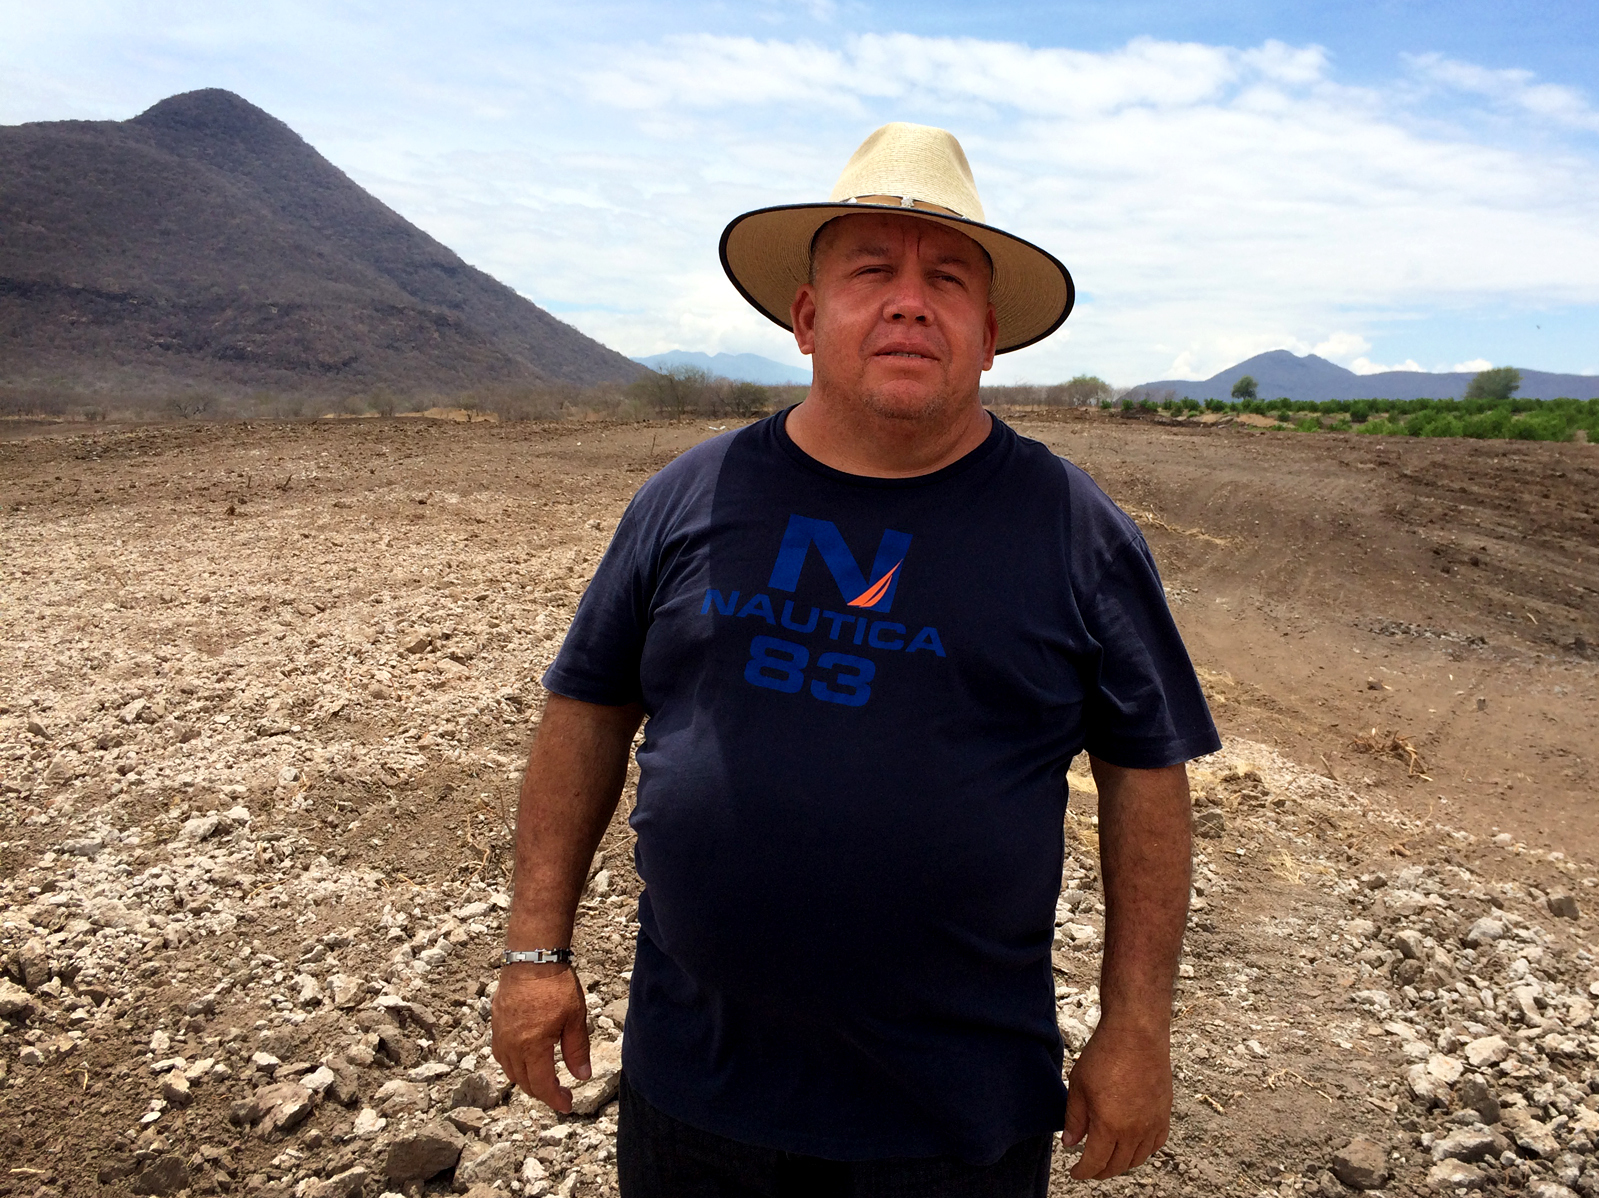 Farmer Efrain Hernandez Vazquez's profits this year will allow him to purchase 30 more acres and expand his lime operation. Photo: Carrie Kahn/NPR